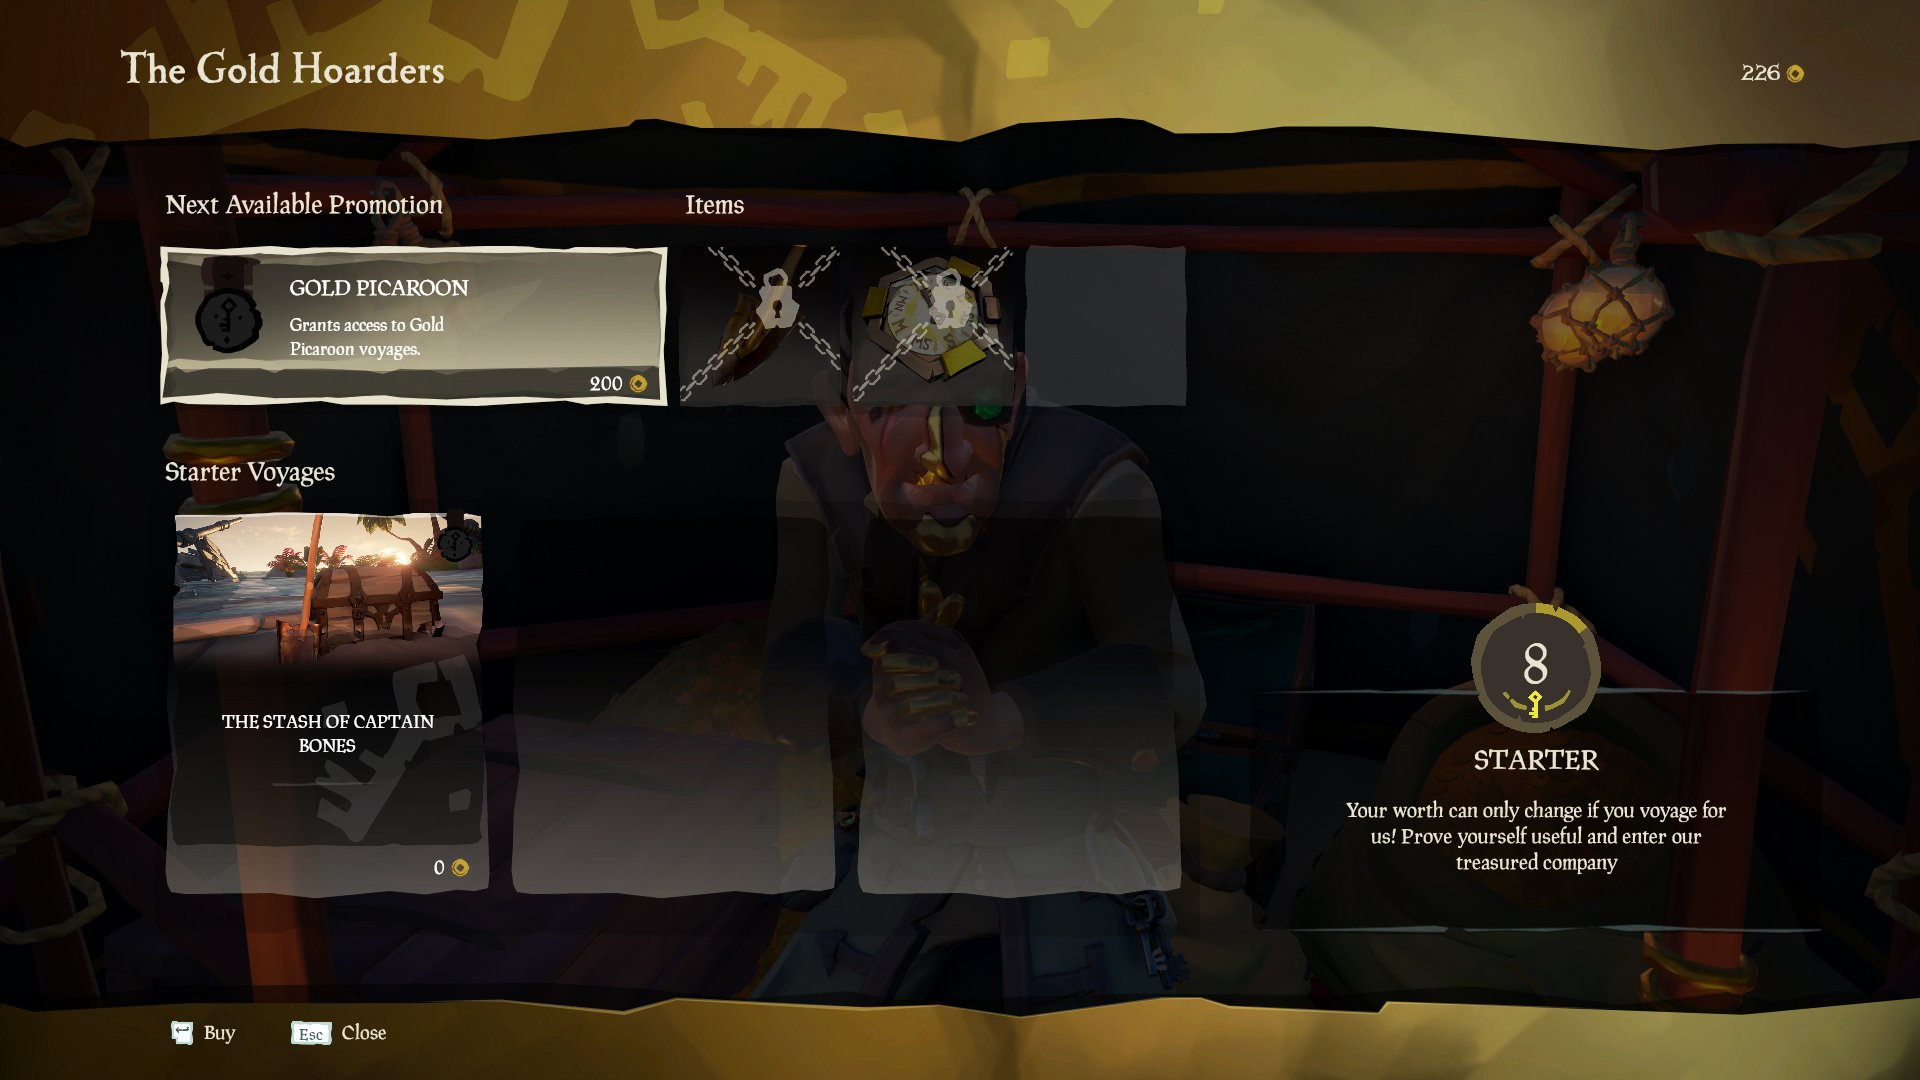 sea of thieves trading company promotion